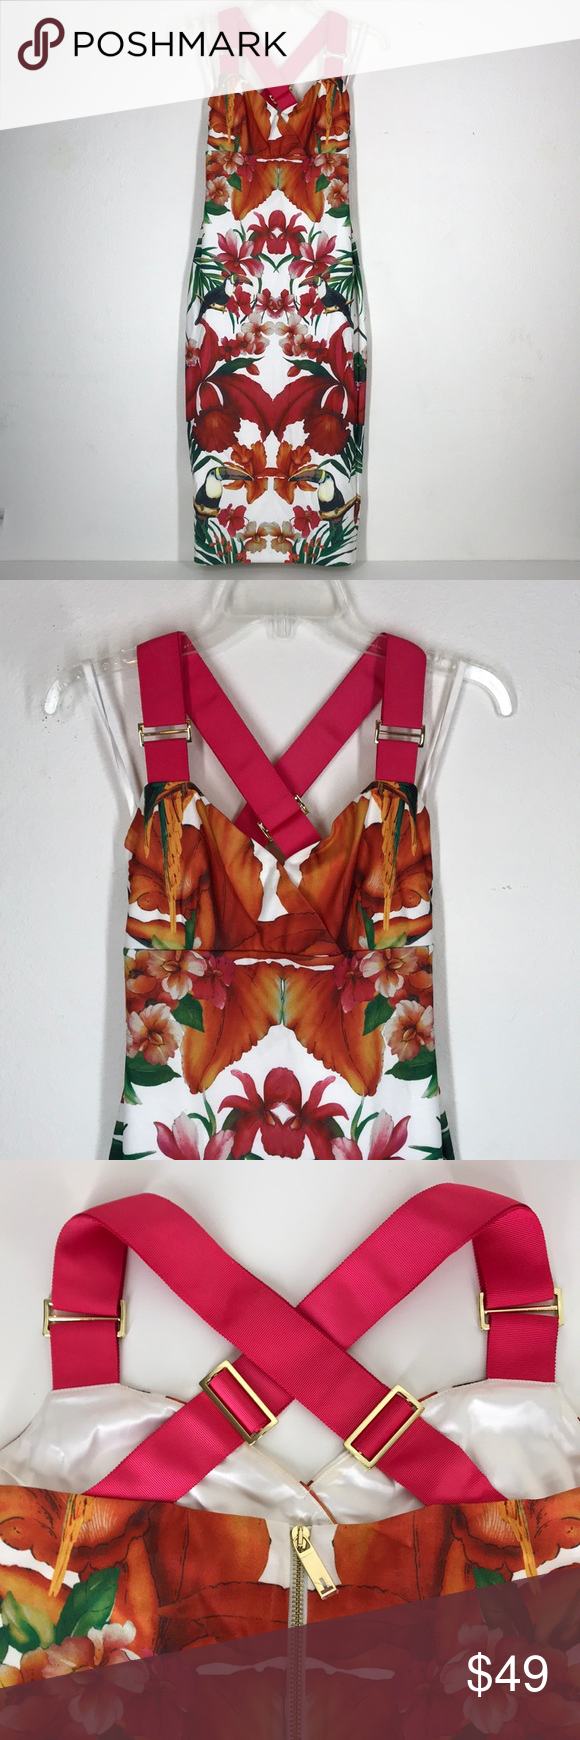 "6952e82b2e34f Ted Baker London white tropical dress size 2 (4 6) This Ted Baker dress is  in like new condition. Only worn once! Length  42"" Bust  34"" Waist  29""  Hips  36"" ..."